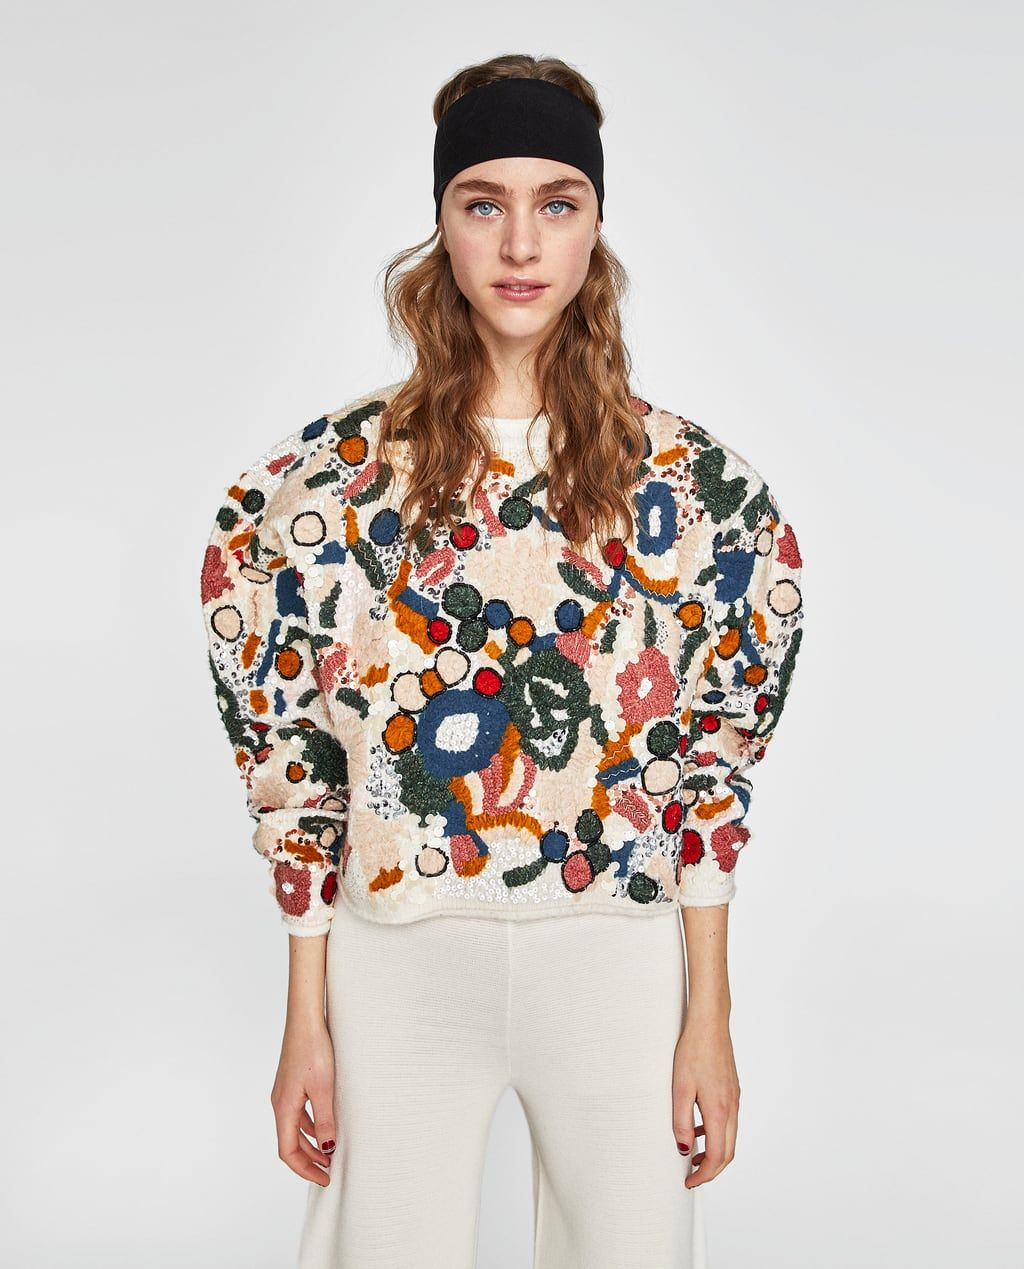 3714606c EMBROIDERED SWEATER WITH SEQUINS-KNITWEAR-WOMAN-NEW COLLECTION | ZARA  United States